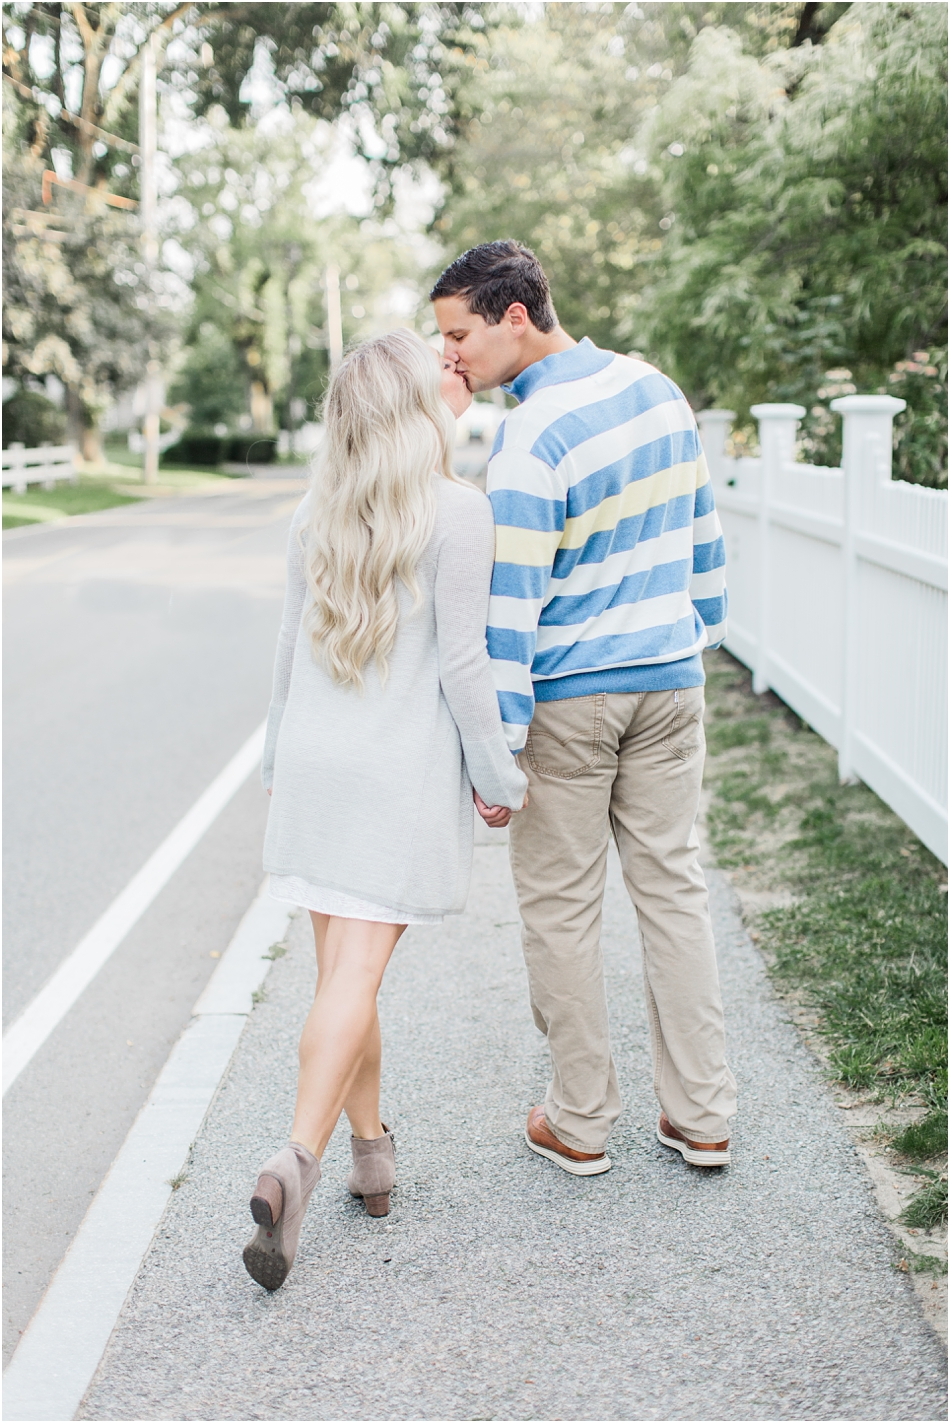 falmouth_beach_engagement_white_picket_fence_cape_cod_boston_new_england_wedding_photographer_Meredith_Jane_Photography_photo_2483.jpg